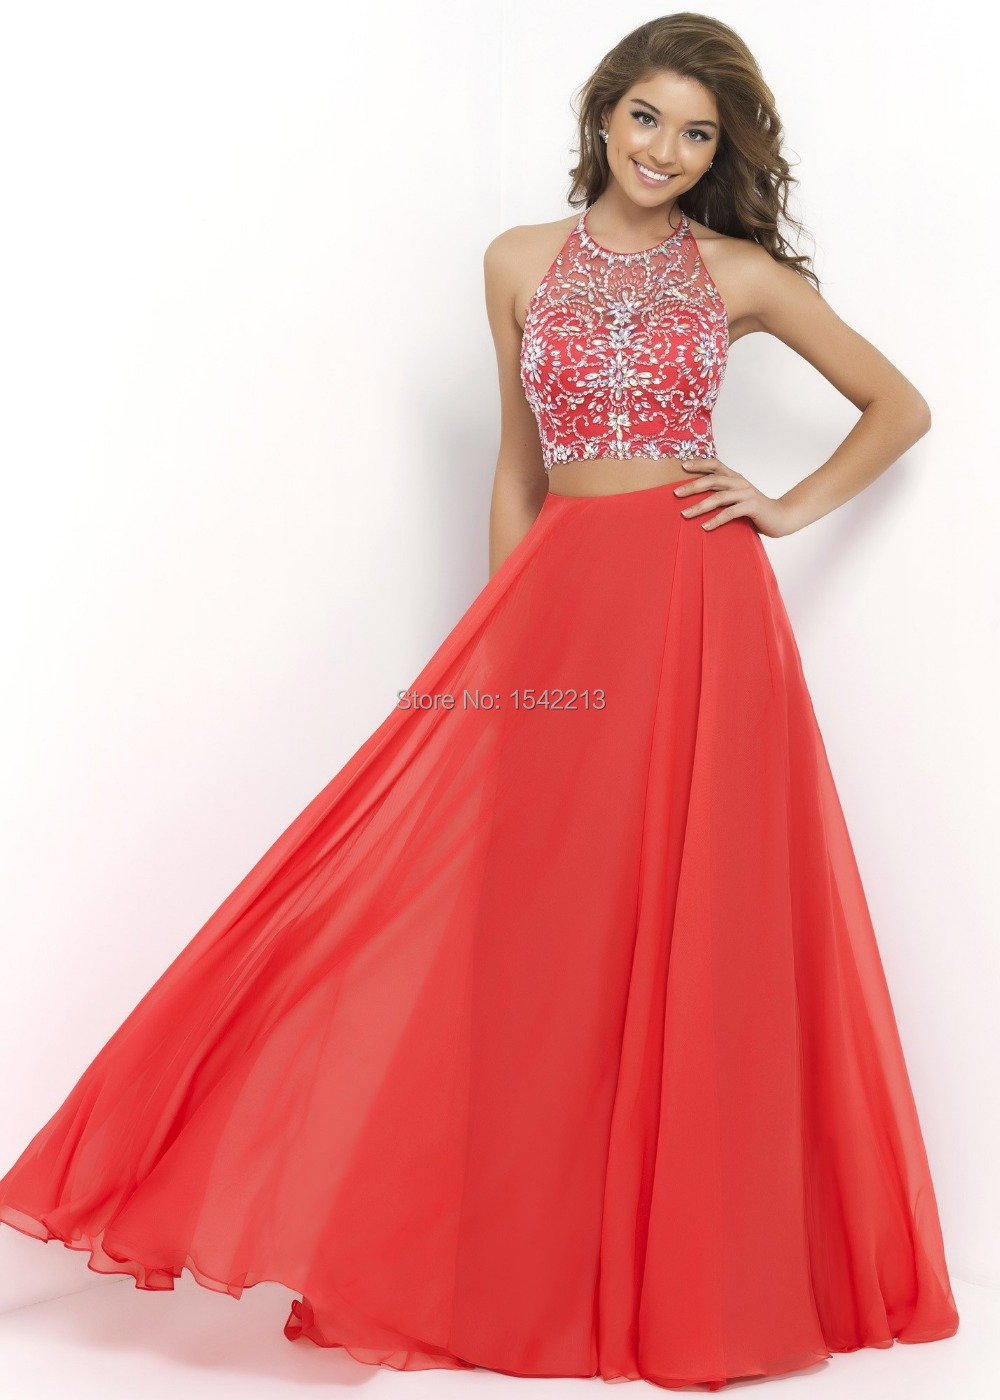 e2195992f62 Get Quotations · Remarkable Red Blue Orange Two Piece Prom Dress Sexy  Crystals Long Women Party Gowns Vestido De